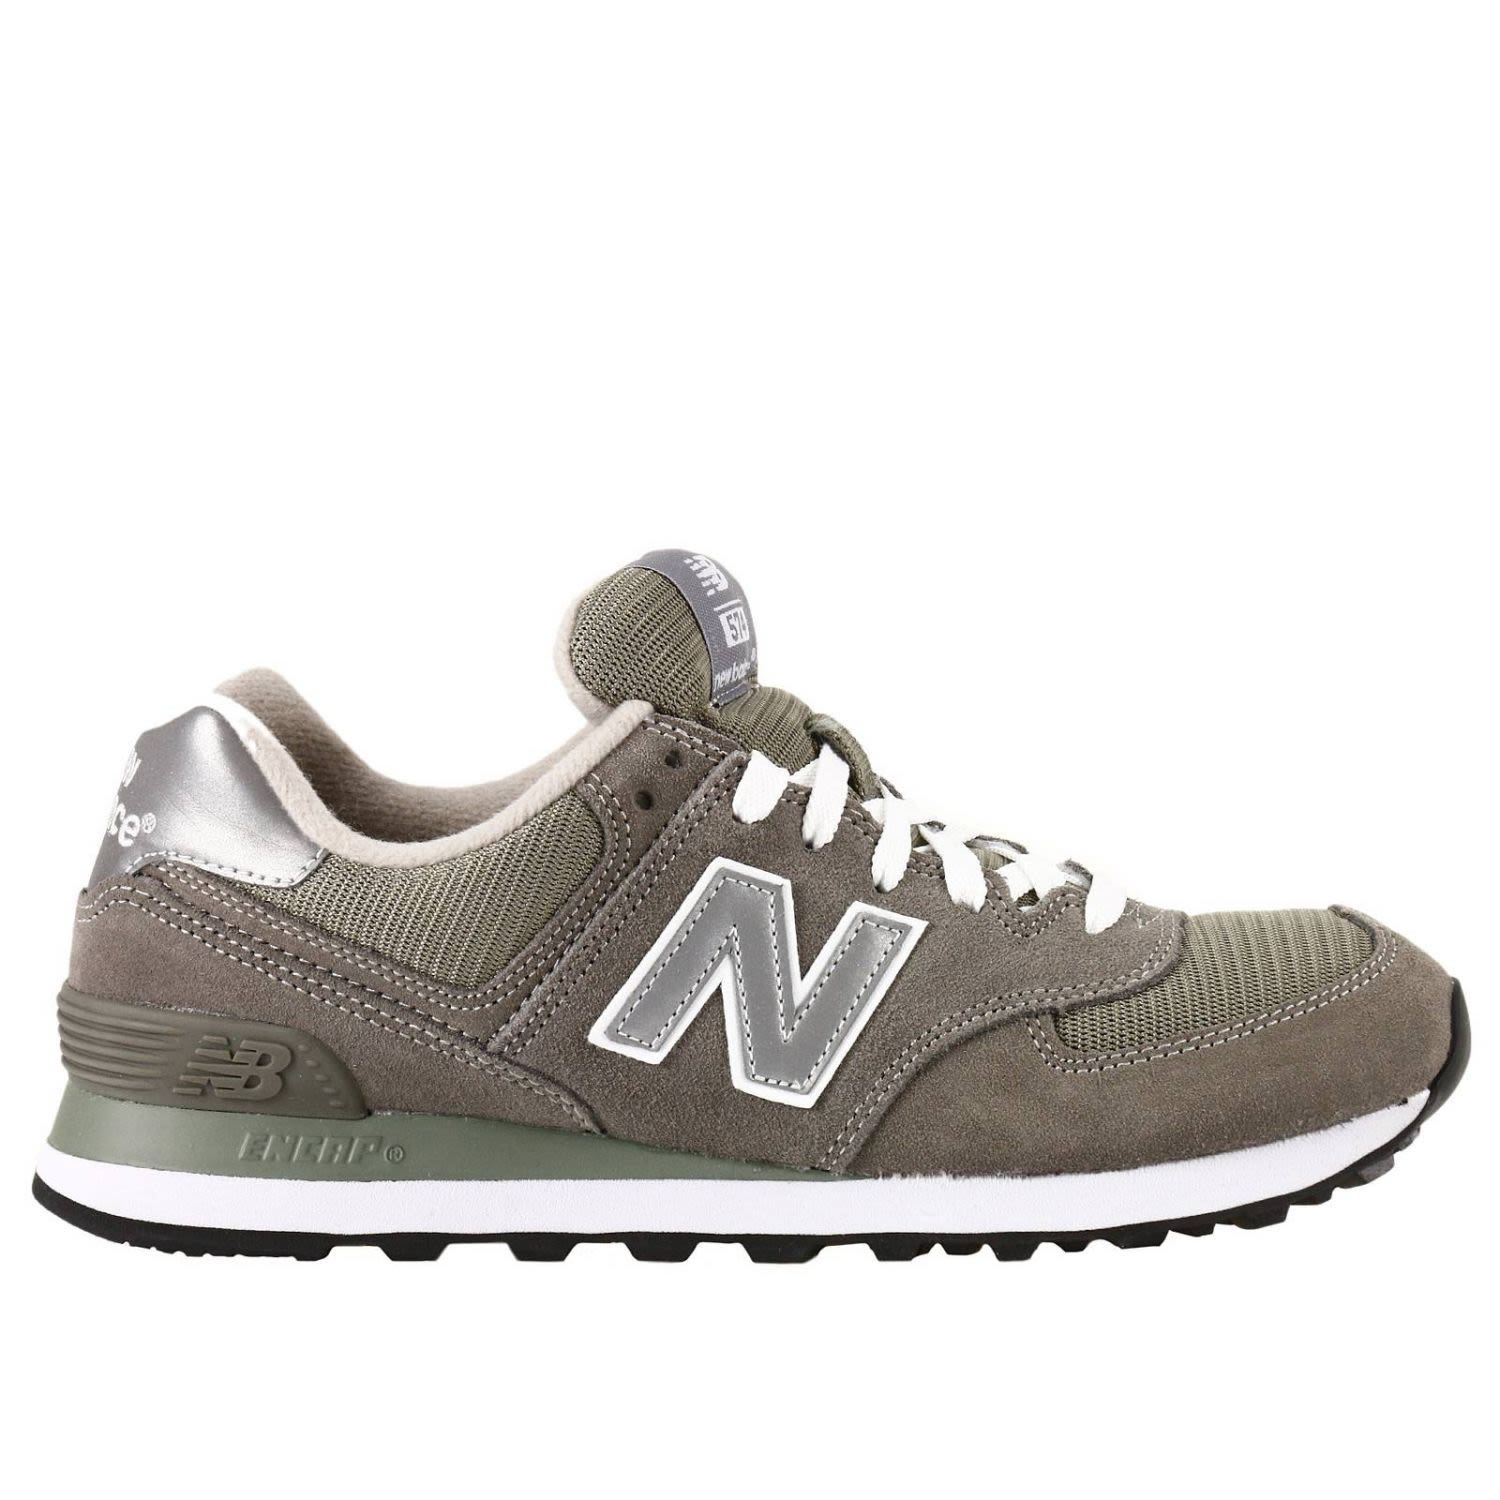 New Balance Suedes SNEAKERS SHOES MEN NEW BALANCE